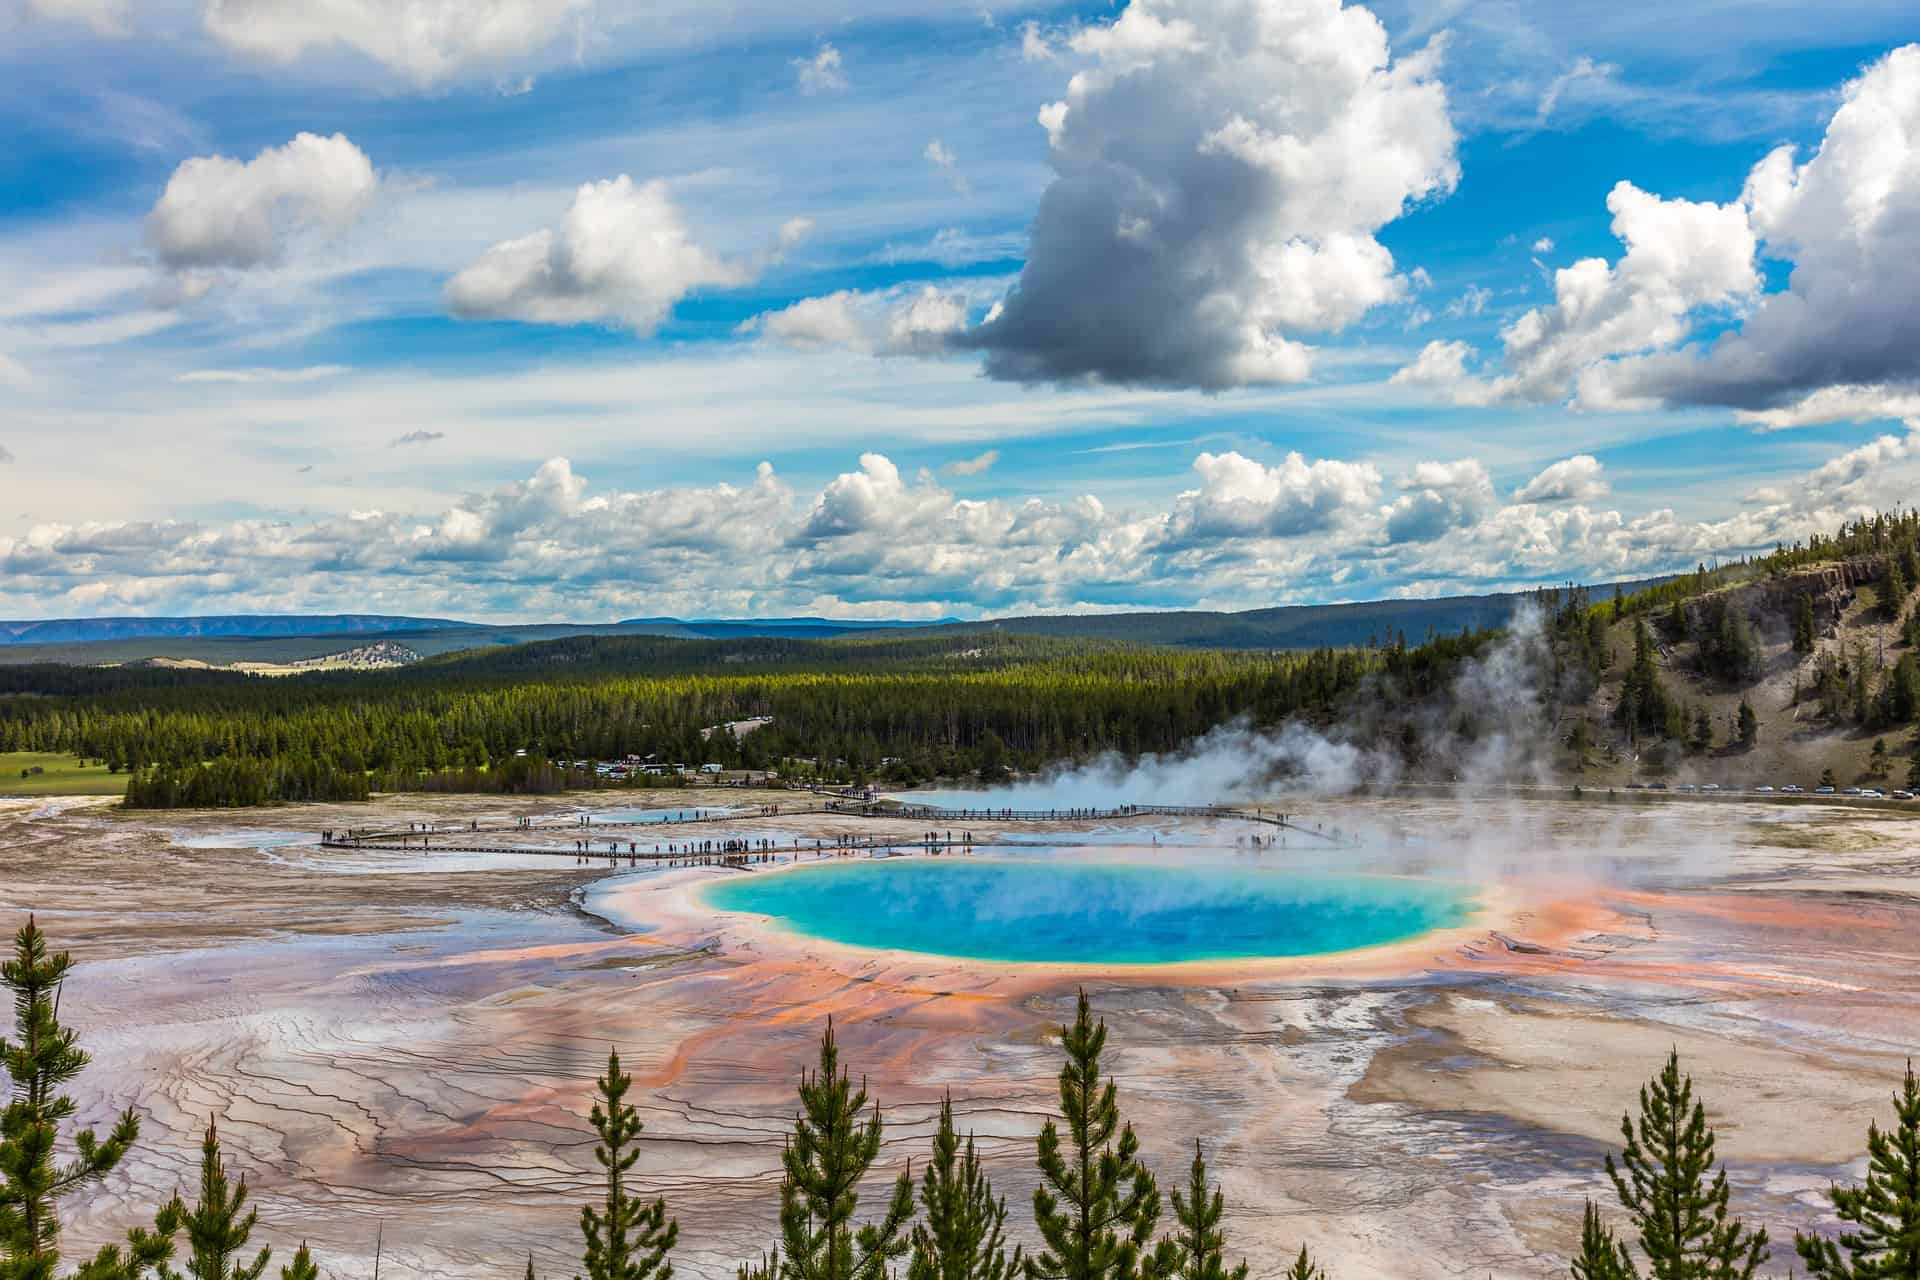 yellowstone national park landscape with a blue lake and clouds